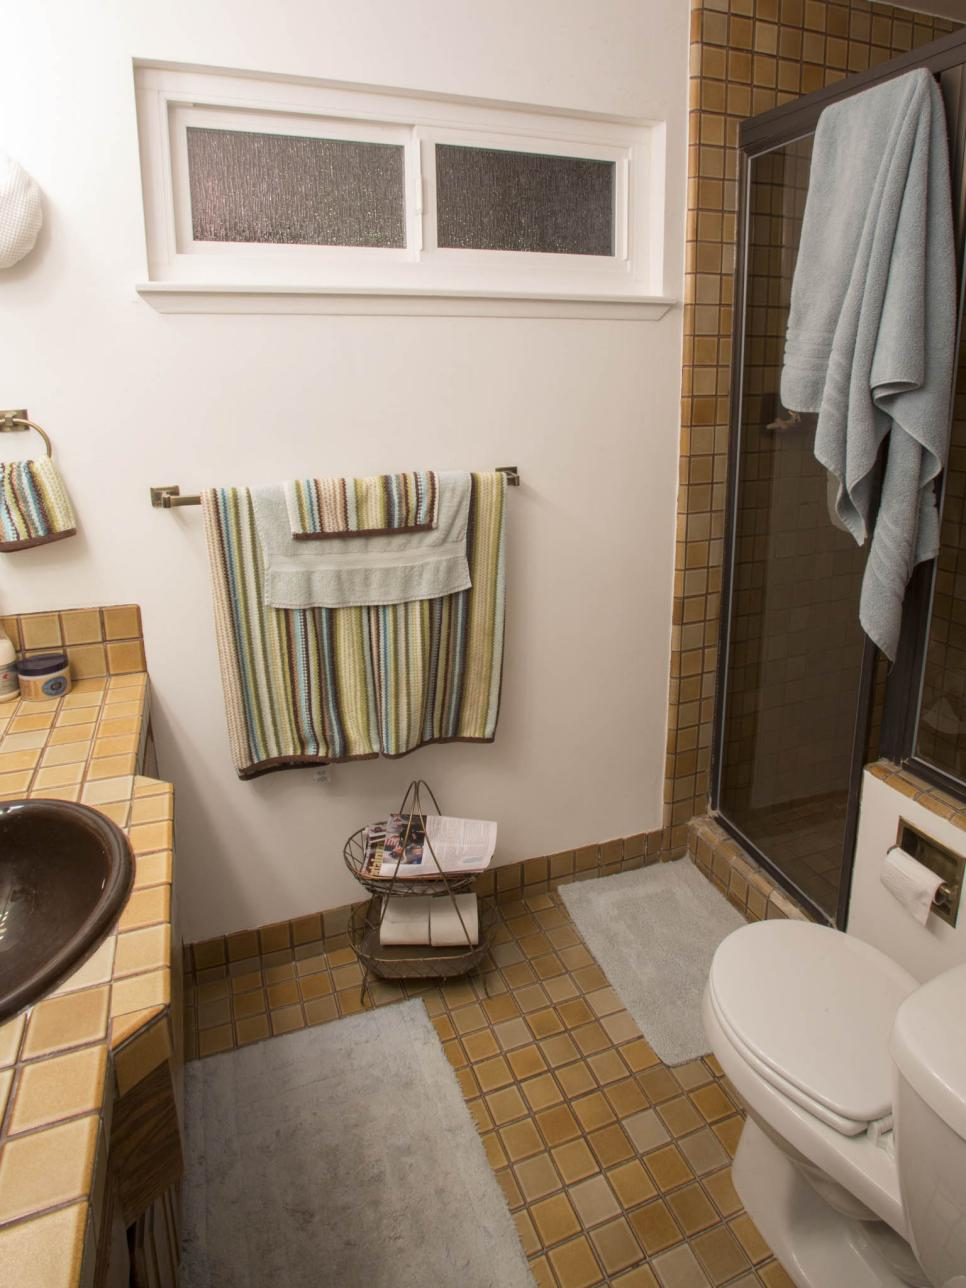 Majestic small bathroom remodel ideas 20 small bathroom before and afters | hgtv jbdwzzl